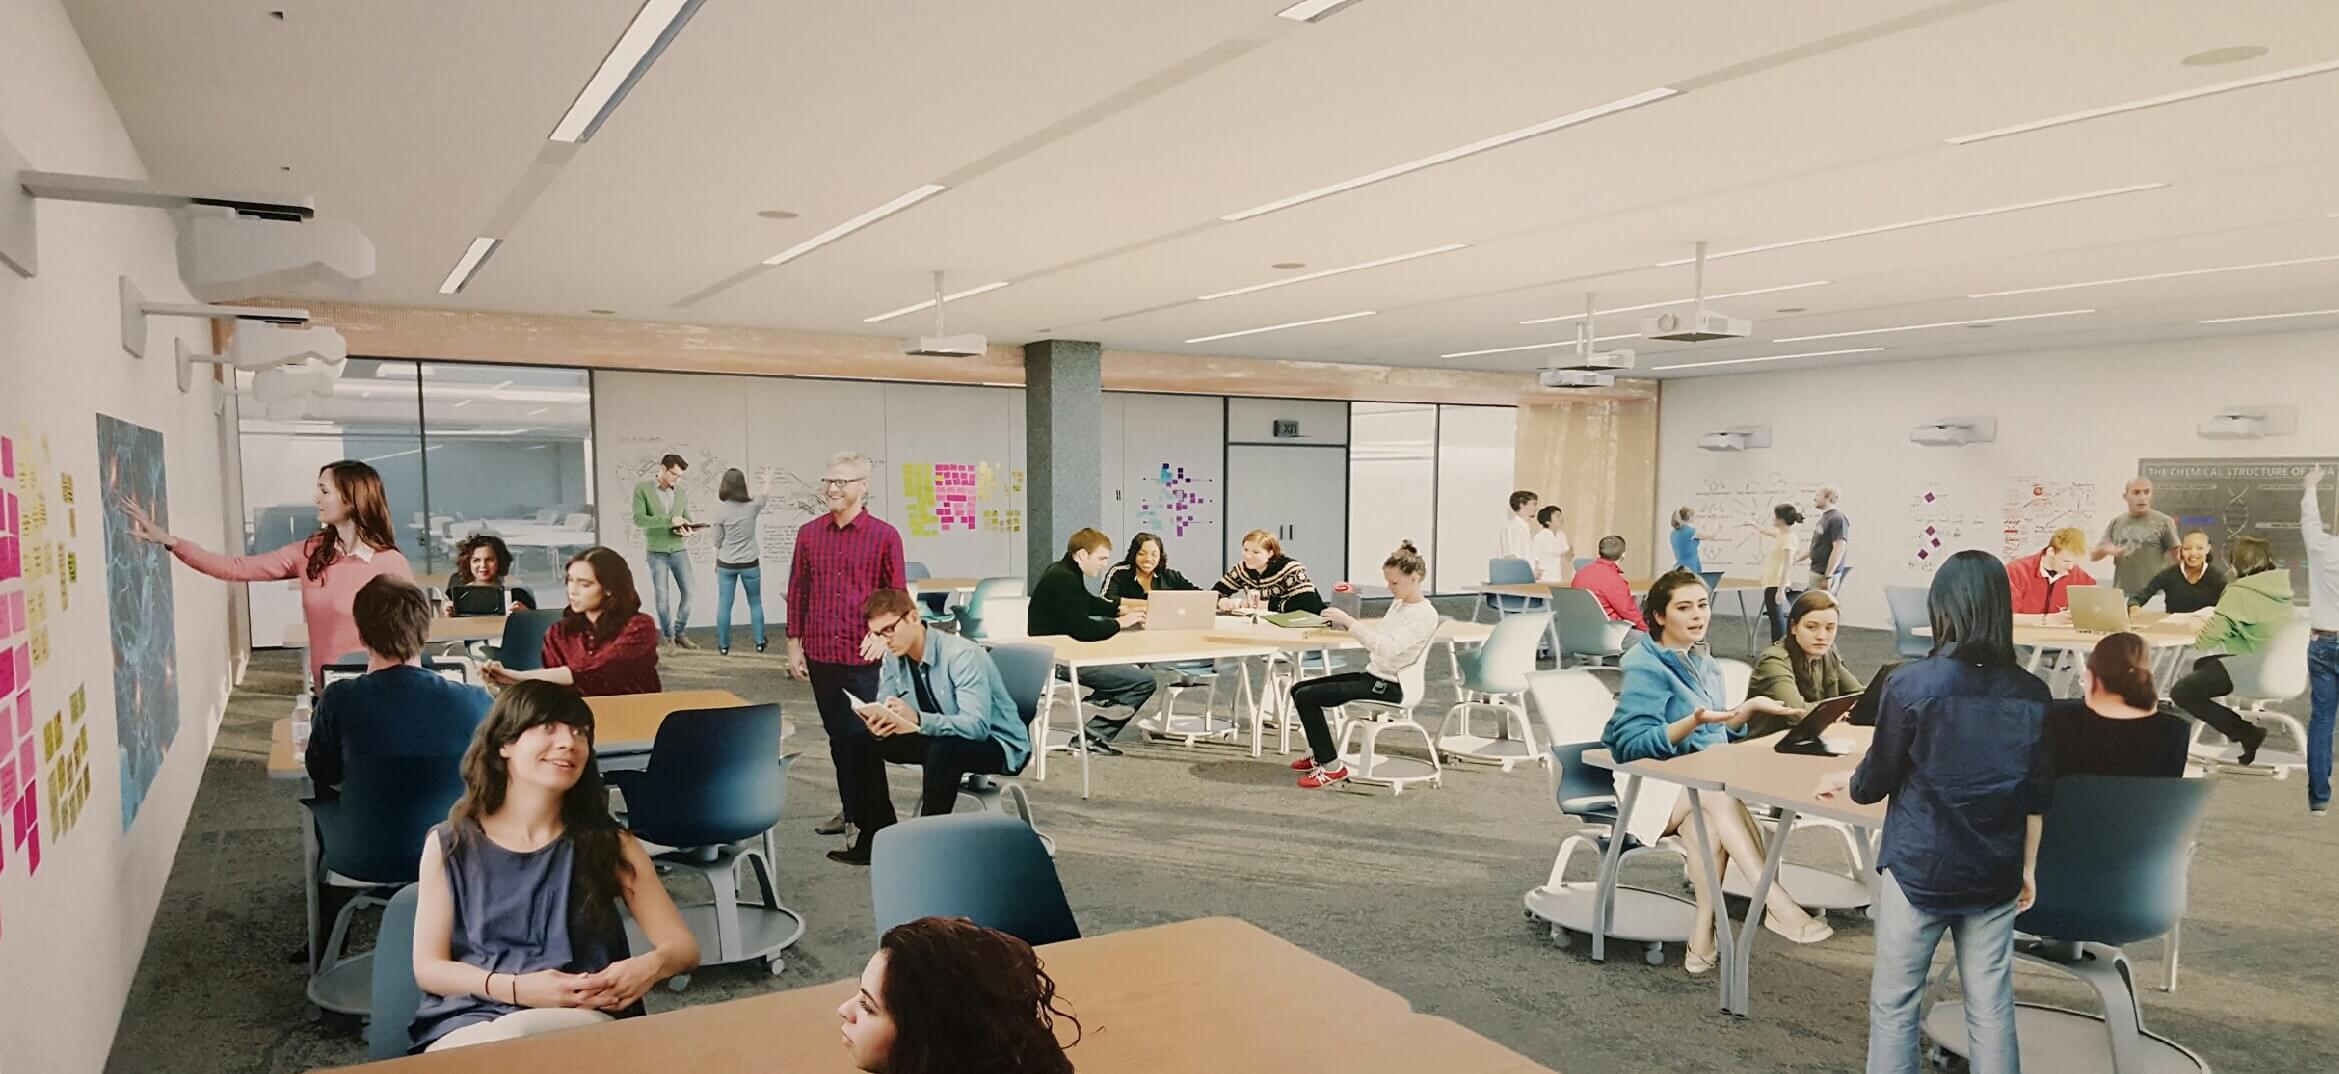 artist rendering of Active Learning Classroom